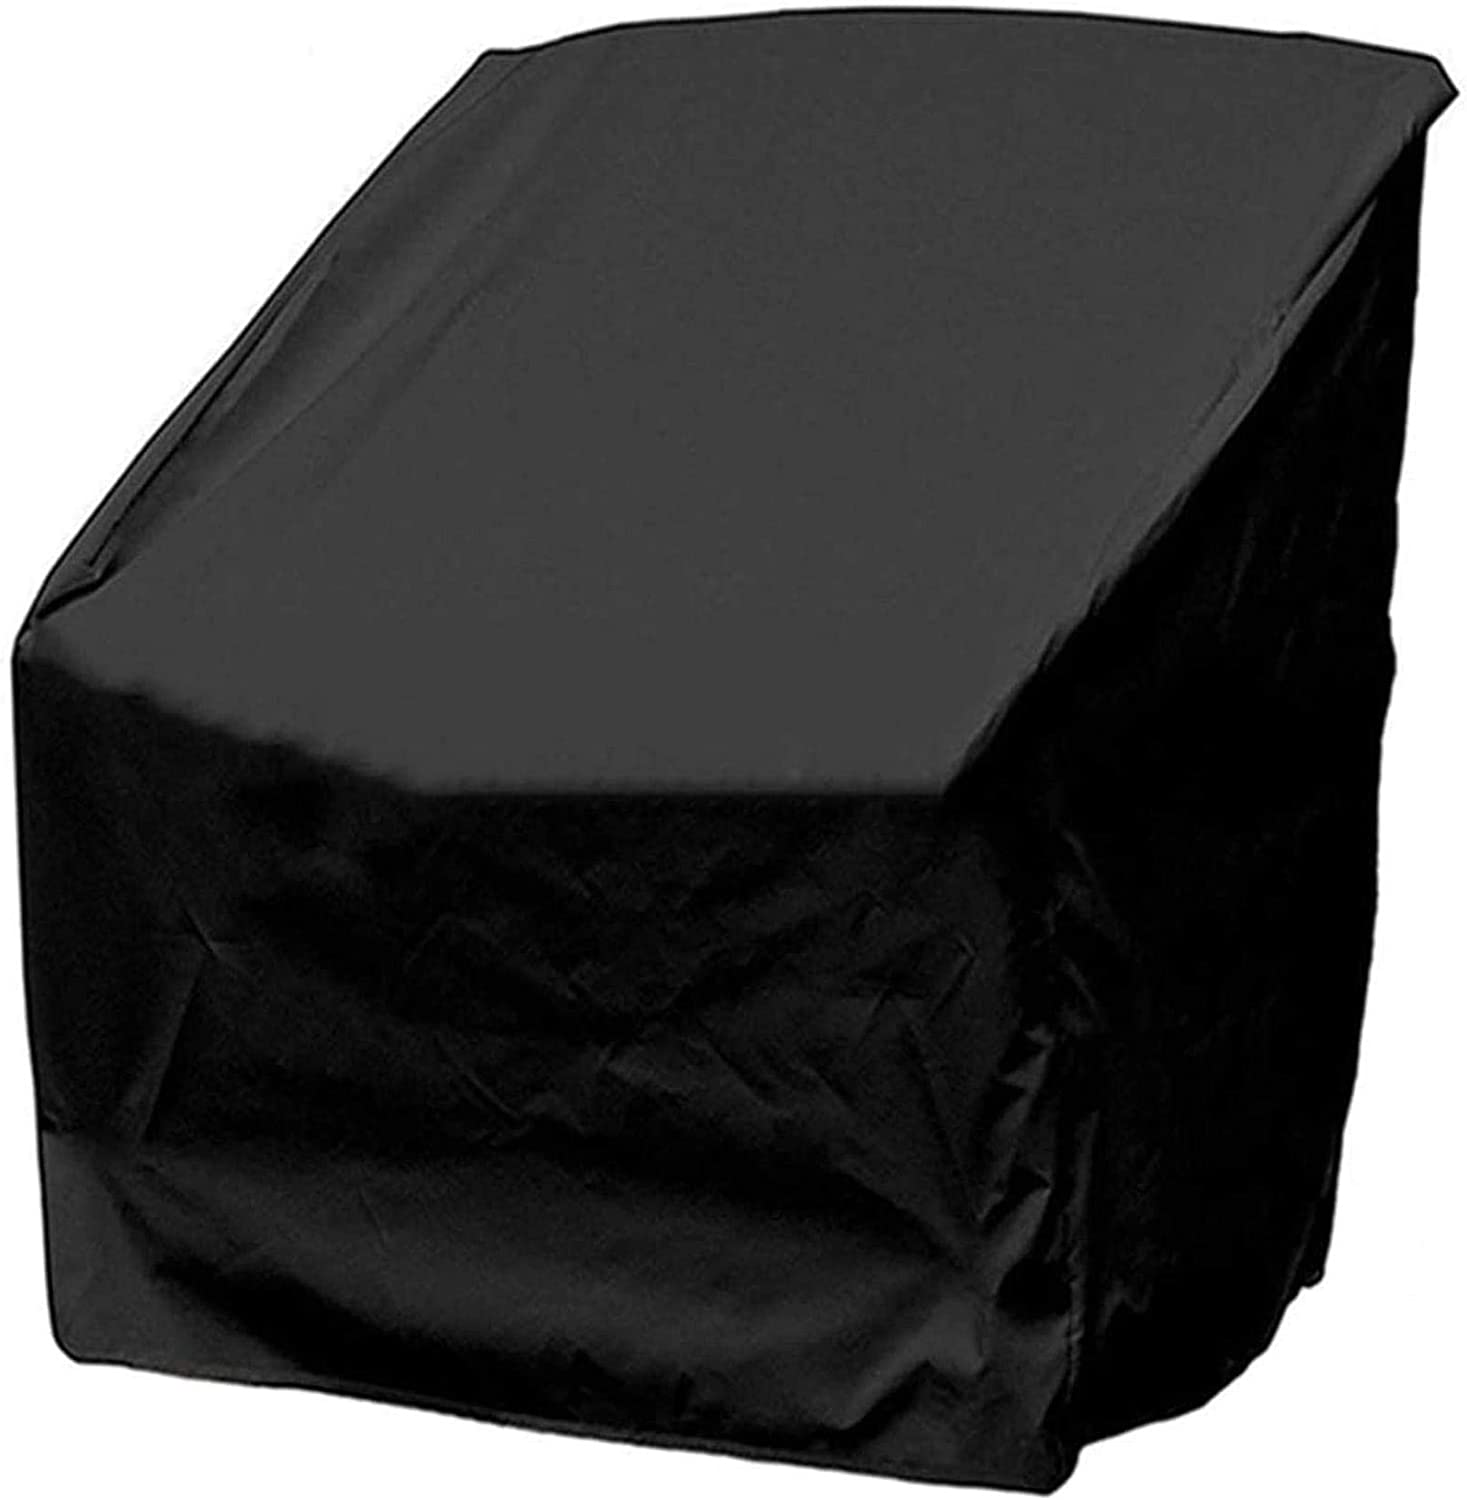 WHCQ Patio Furniture Cover 420D Garden Polyester Outdoor Oxford 2021new shipping Max 89% OFF free